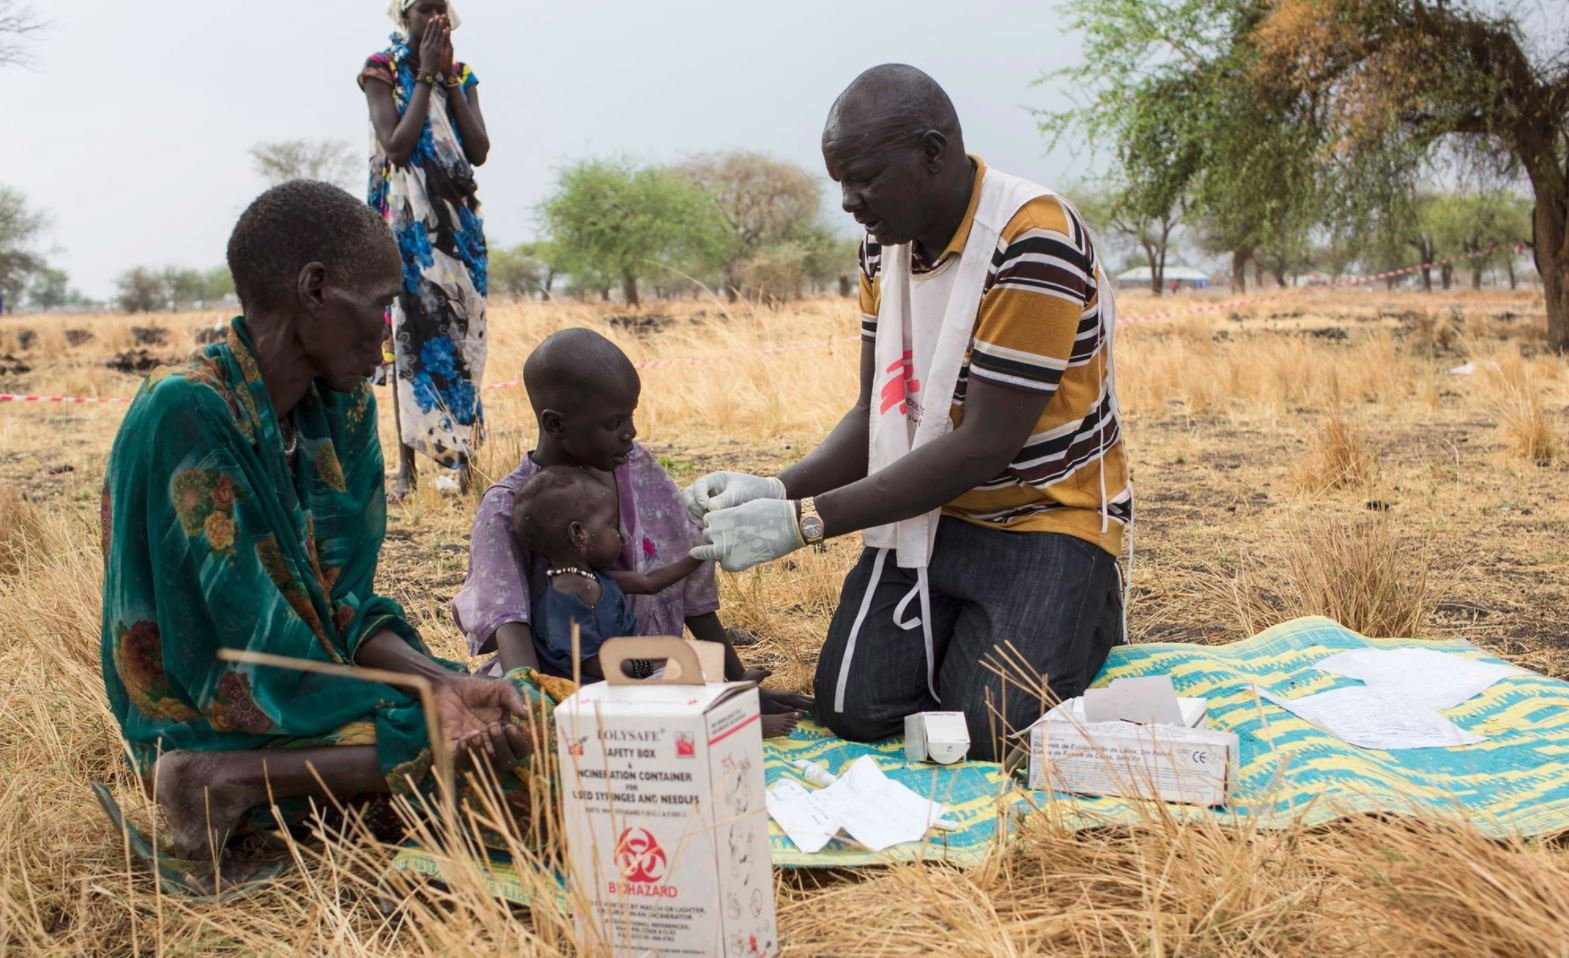 LEER, SOUTH SUDAN – SIEGFRIED MODOLA March 2017 – Community Health Promoter, Gatbel, tests a child for malaria at an outdoor support clinic in Thaker, Leer County, South Sudan. Photo courtesy of Doctors Without Borders.